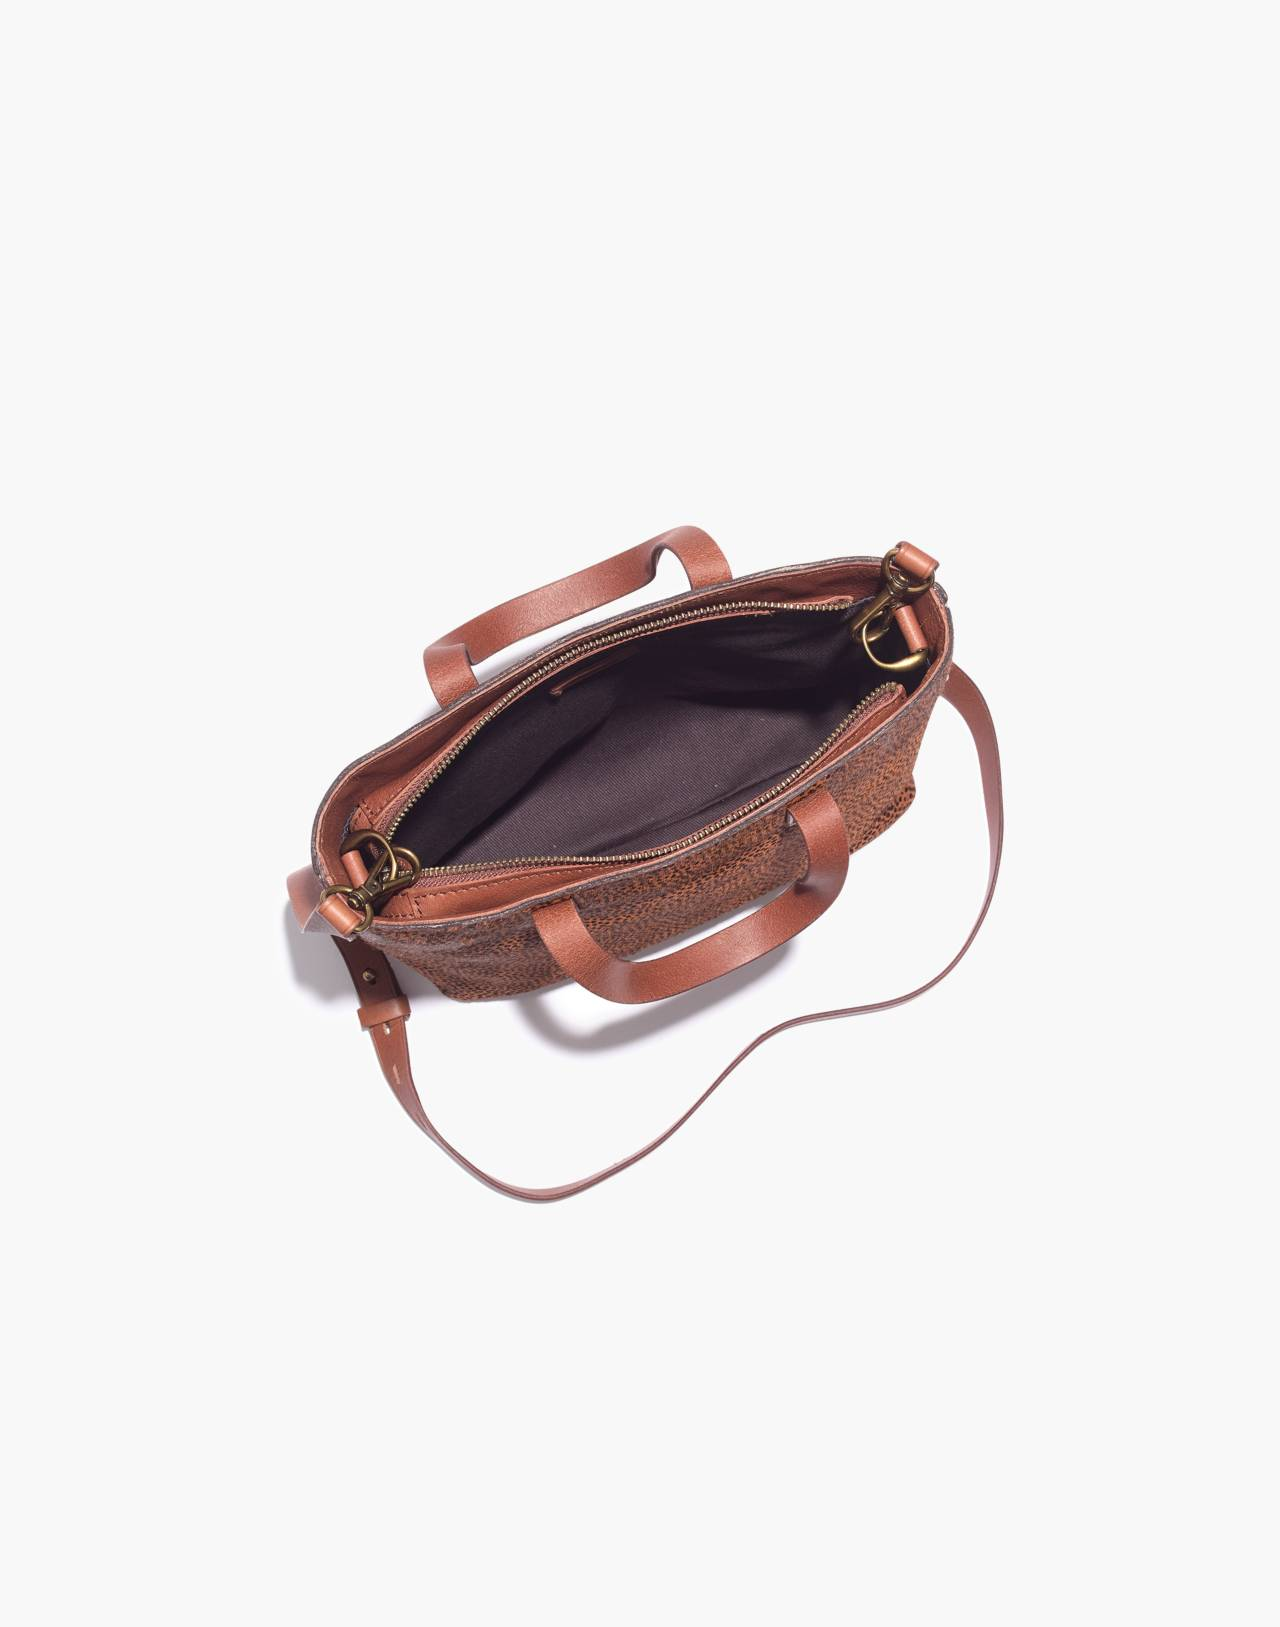 The Zip-Top Transport Crossbody in Spotted Calf Hair in bittersweet image 3